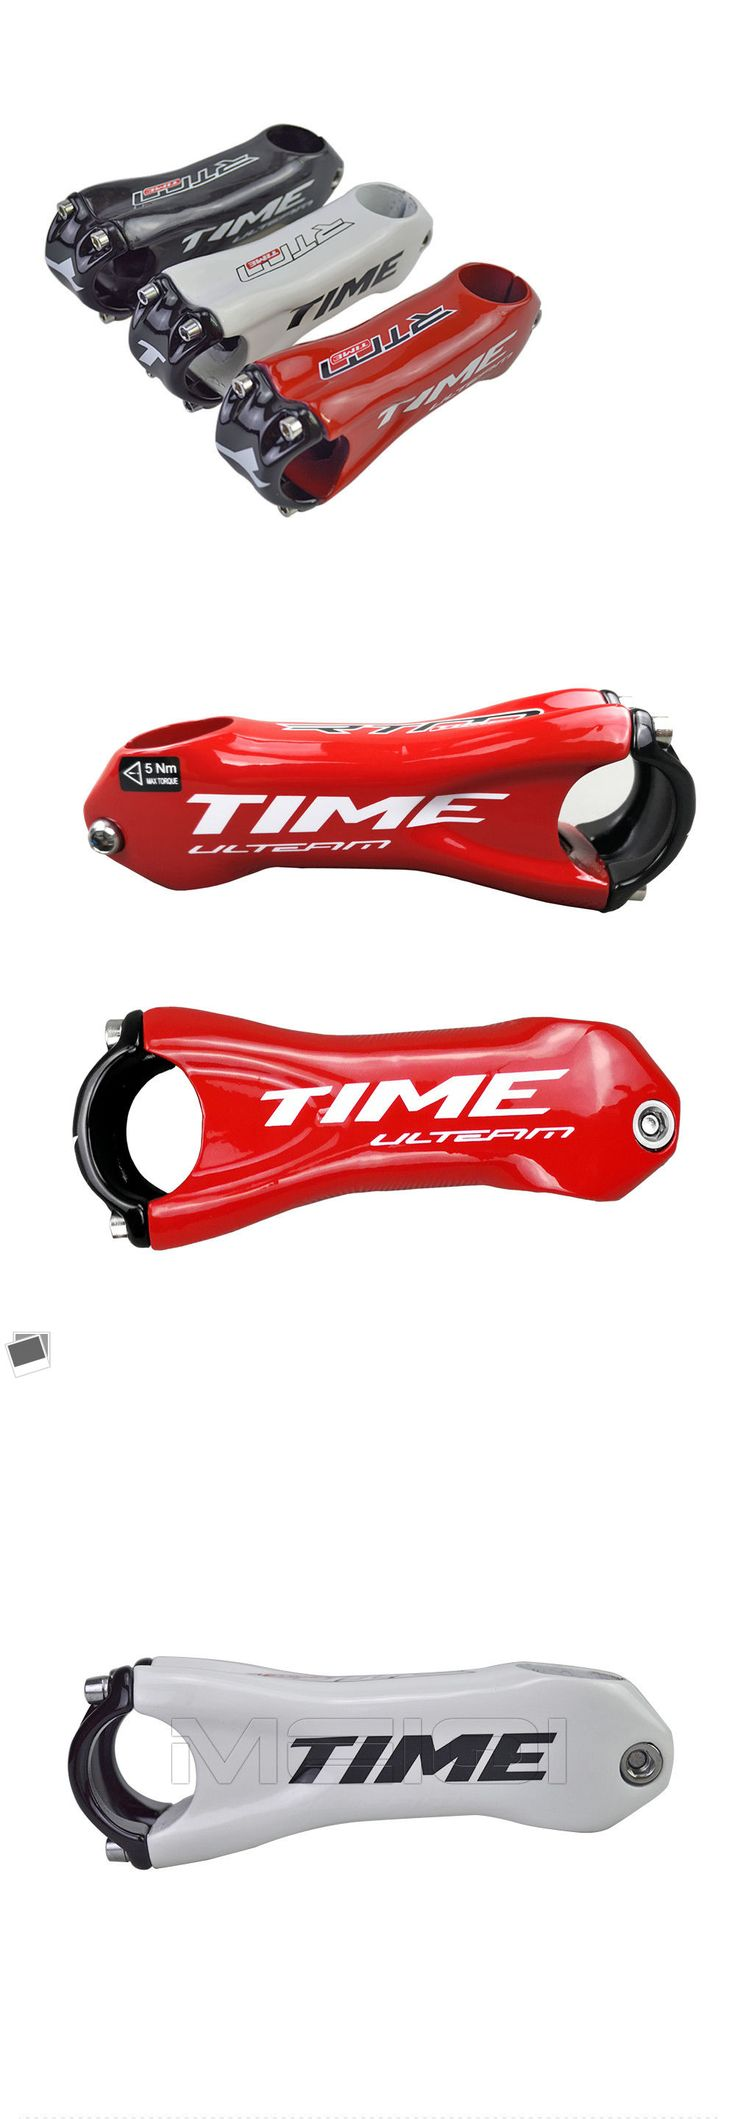 Stems 177827: Time Full Carbon Fiber Bicycle Stem Road Carbon Stem Bicycle Parts 6 Degree Ud -> BUY IT NOW ONLY: $38 on eBay!